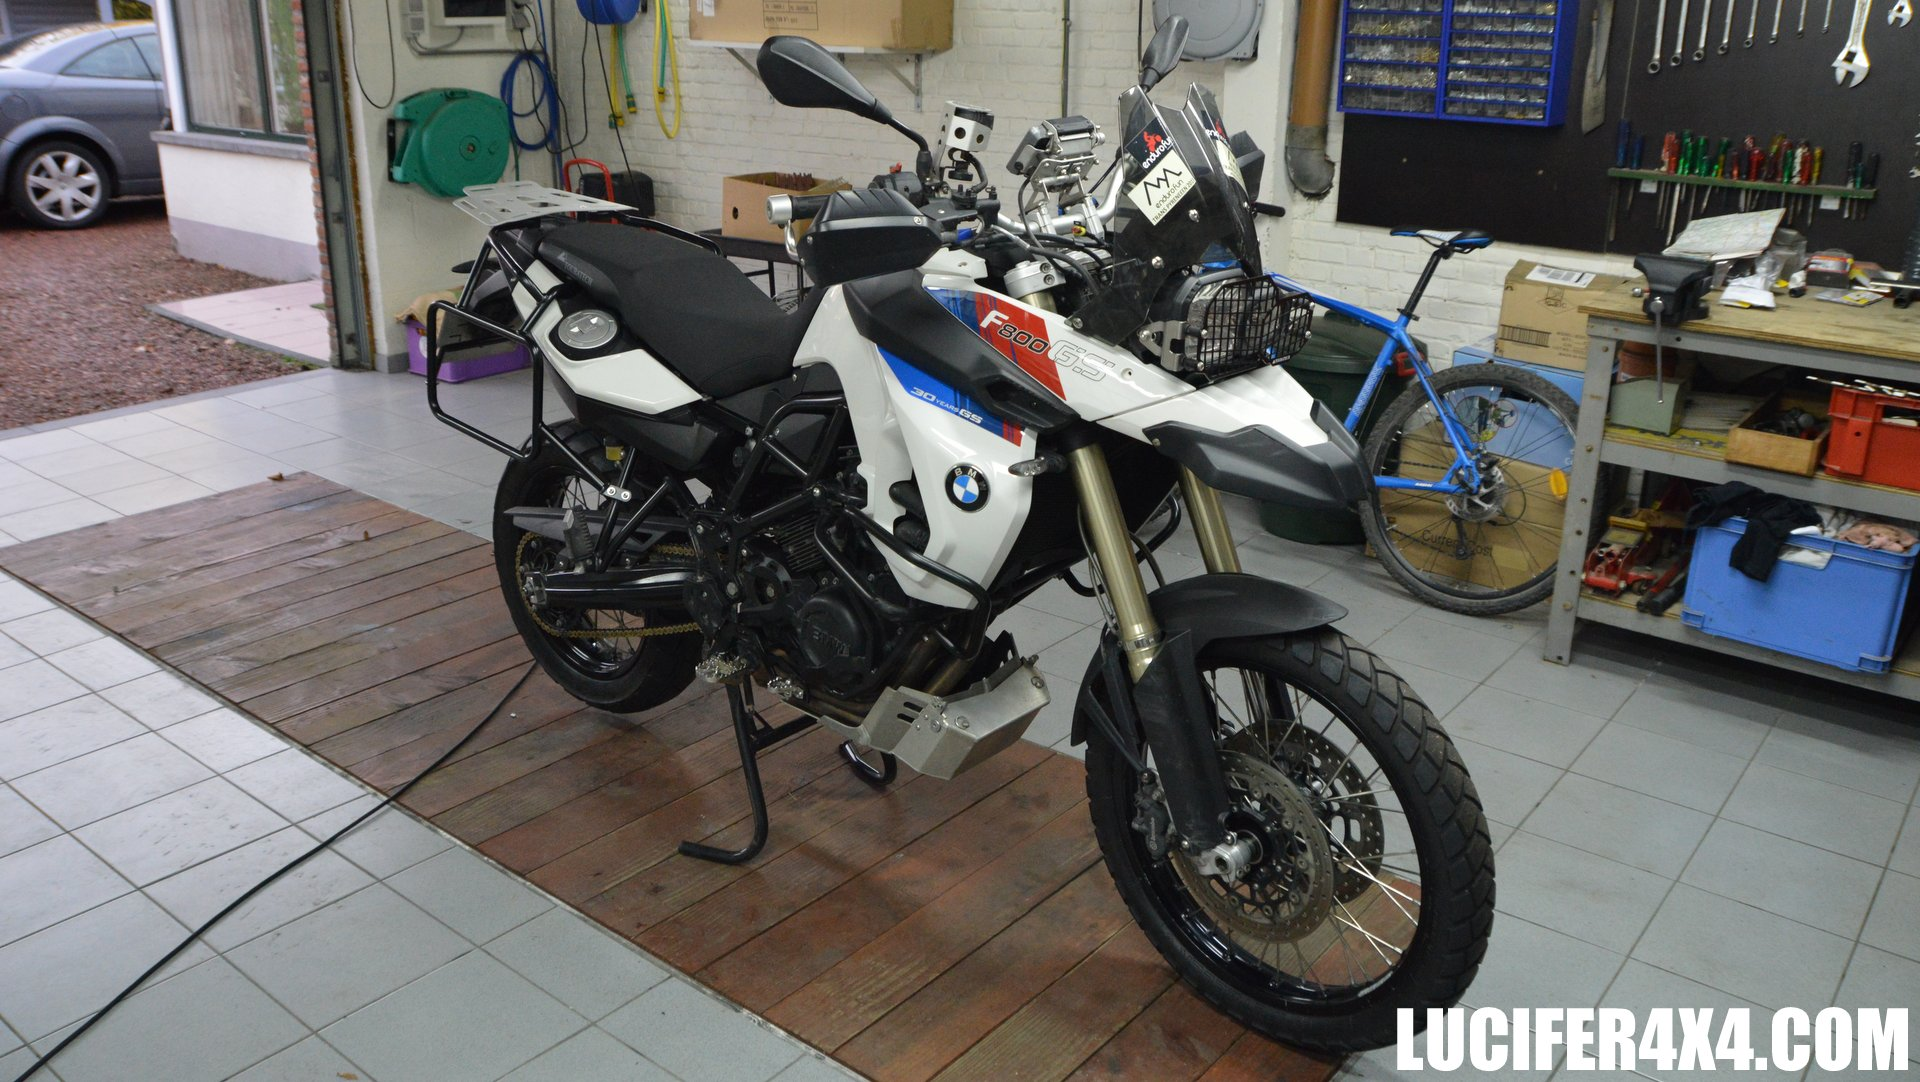 Upgrading the F800GS with Touratech parts